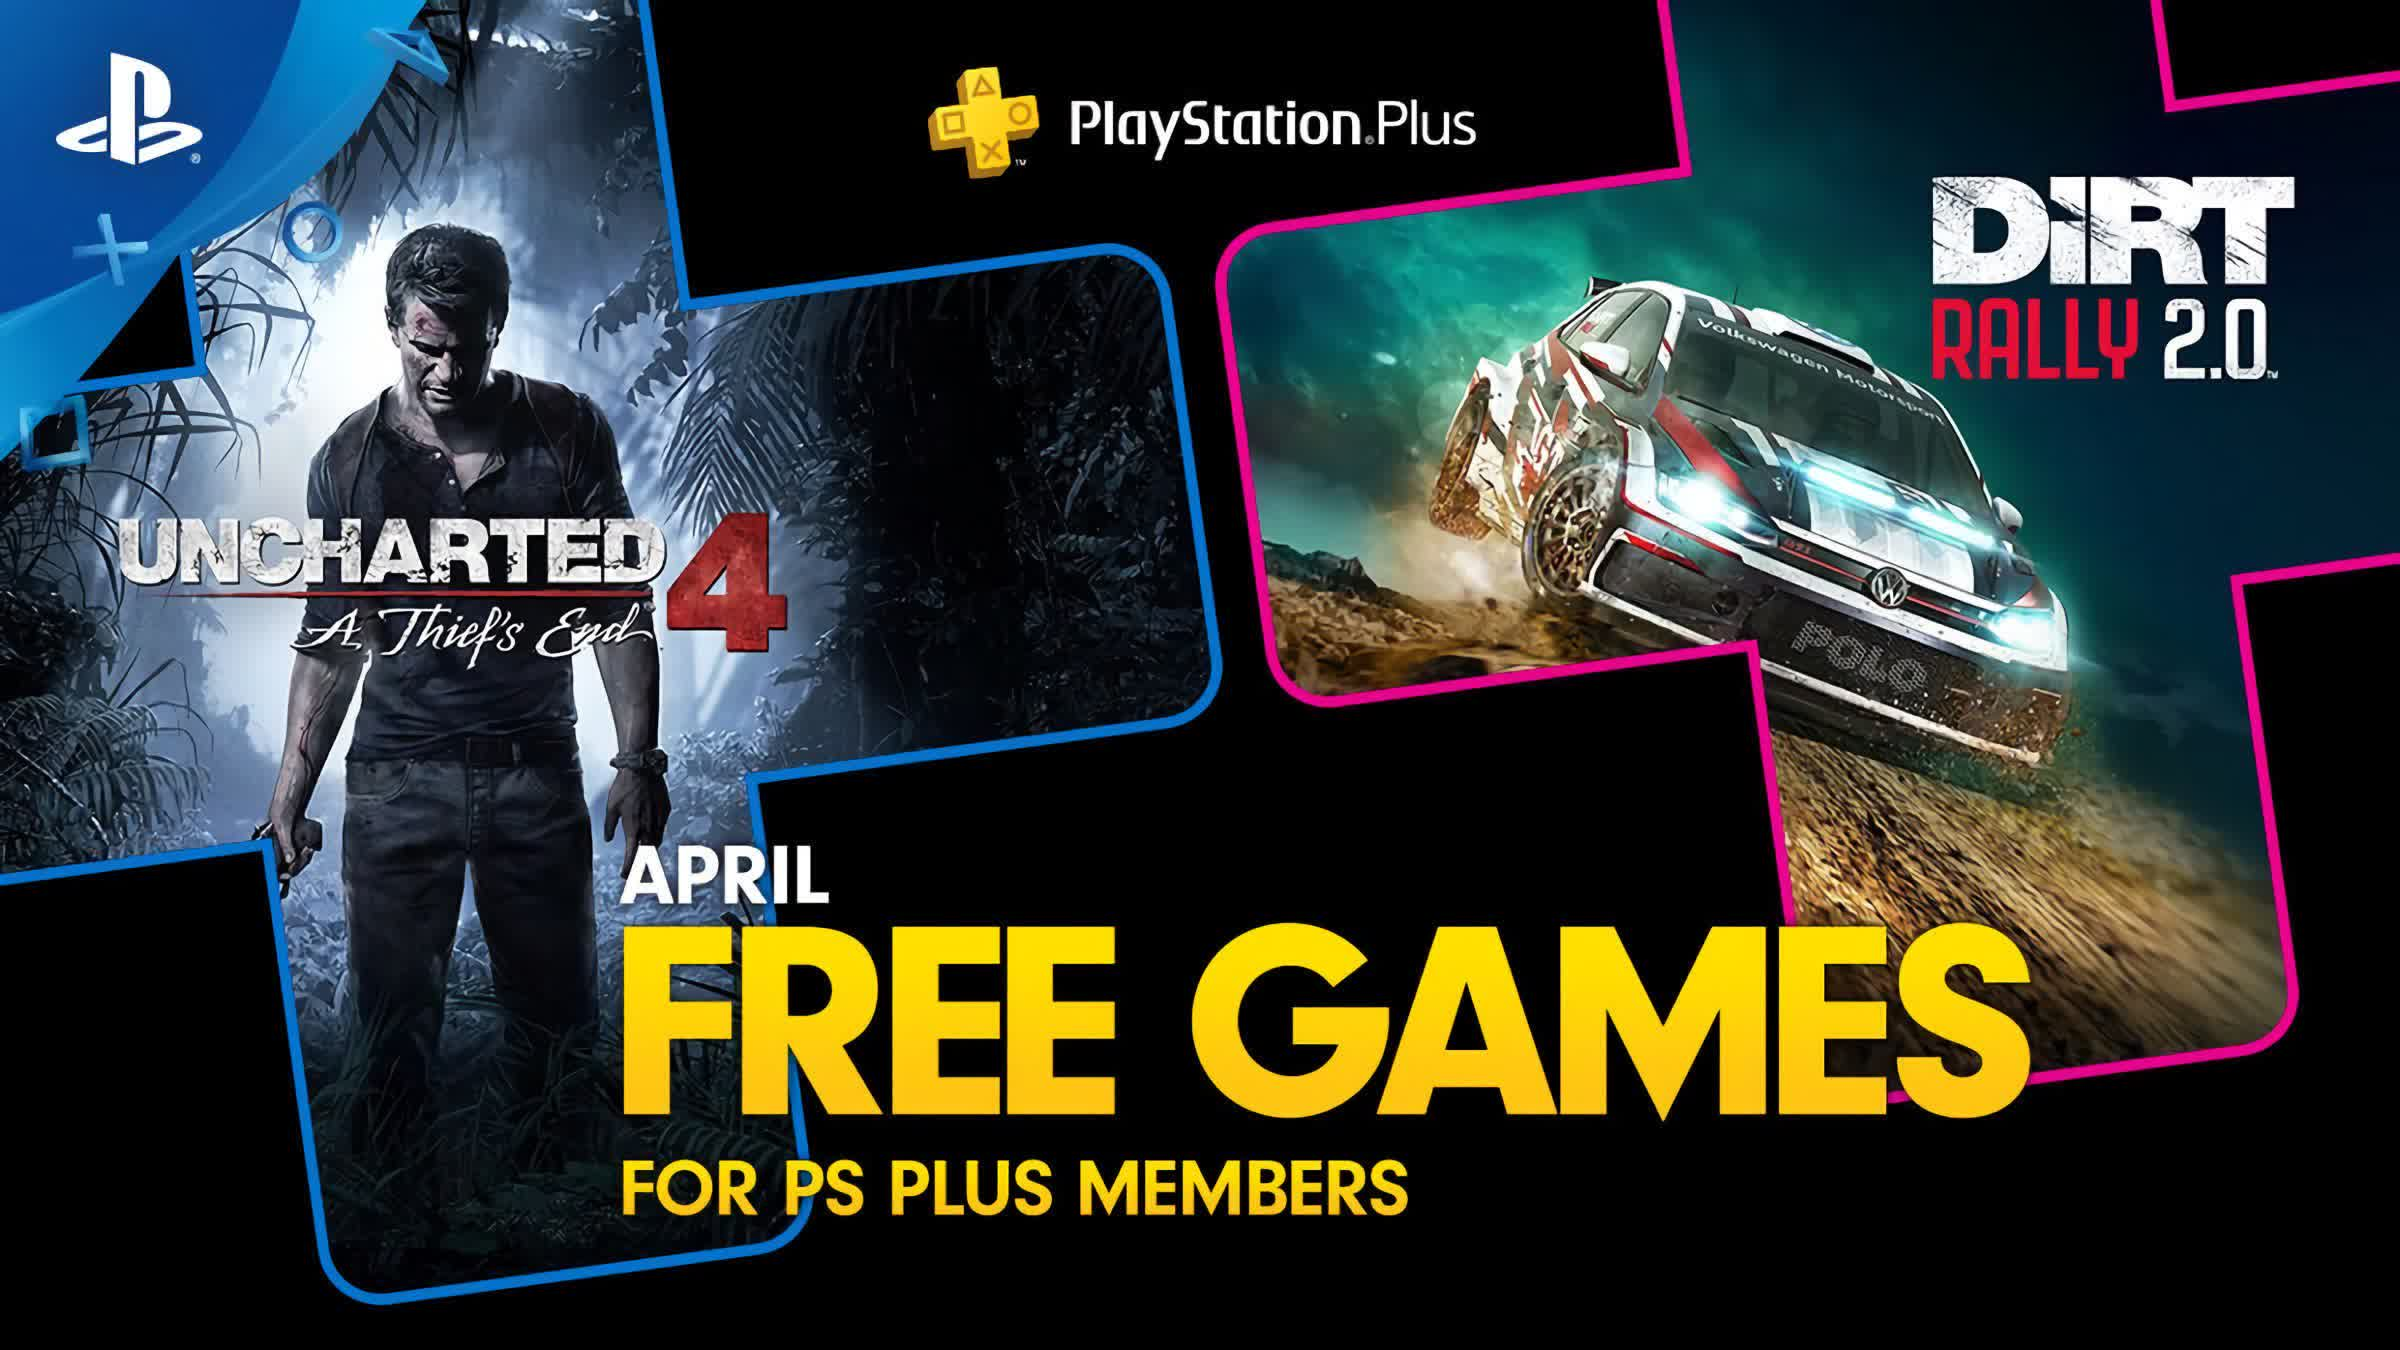 Two free games per console is returning to PlayStation Plus members again